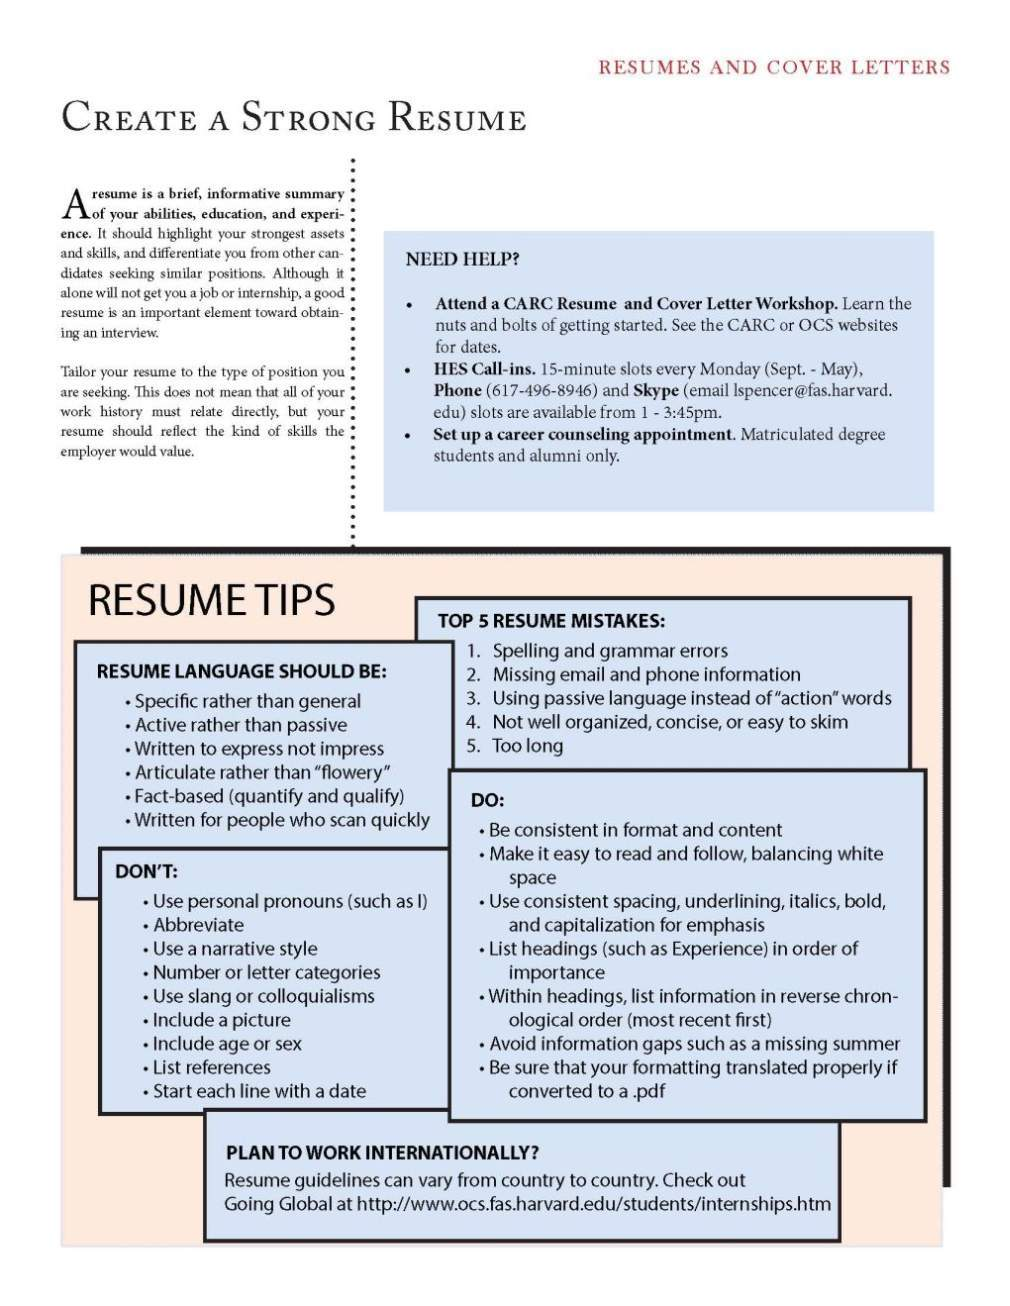 harvard business school resume book mba can write front end template projects for data Resume Harvard Business School Resume Book